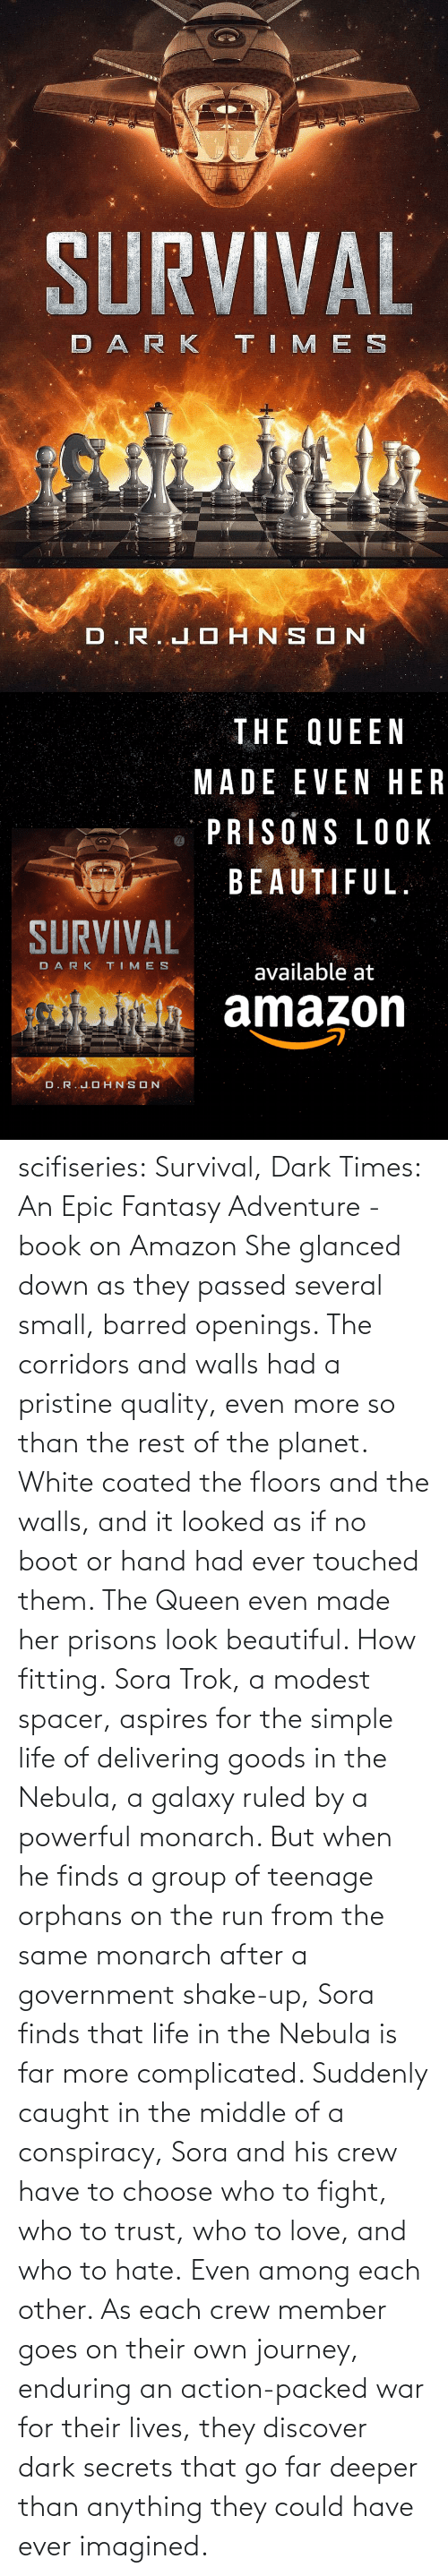 Goes: scifiseries: Survival, Dark Times: An Epic Fantasy Adventure - book on Amazon  She glanced down as they  passed several small, barred openings. The corridors and walls had a  pristine quality, even more so than the rest of the planet. White coated  the floors and the walls, and it looked as if no boot or hand had ever  touched them.  The Queen even made her prisons look beautiful.  How fitting. Sora  Trok, a modest spacer, aspires for the simple life of delivering goods  in the Nebula, a galaxy ruled by a powerful monarch. But when he finds a  group of teenage orphans on the run from the same monarch after a  government shake-up, Sora finds that life in the Nebula is far more complicated.  Suddenly  caught in the middle of a conspiracy, Sora and his crew have to choose  who to fight, who to trust, who to love, and who to hate. Even among each other.  As  each crew member goes on their own journey, enduring an action-packed  war for their lives, they discover dark secrets that go far deeper than  anything they could have ever imagined.